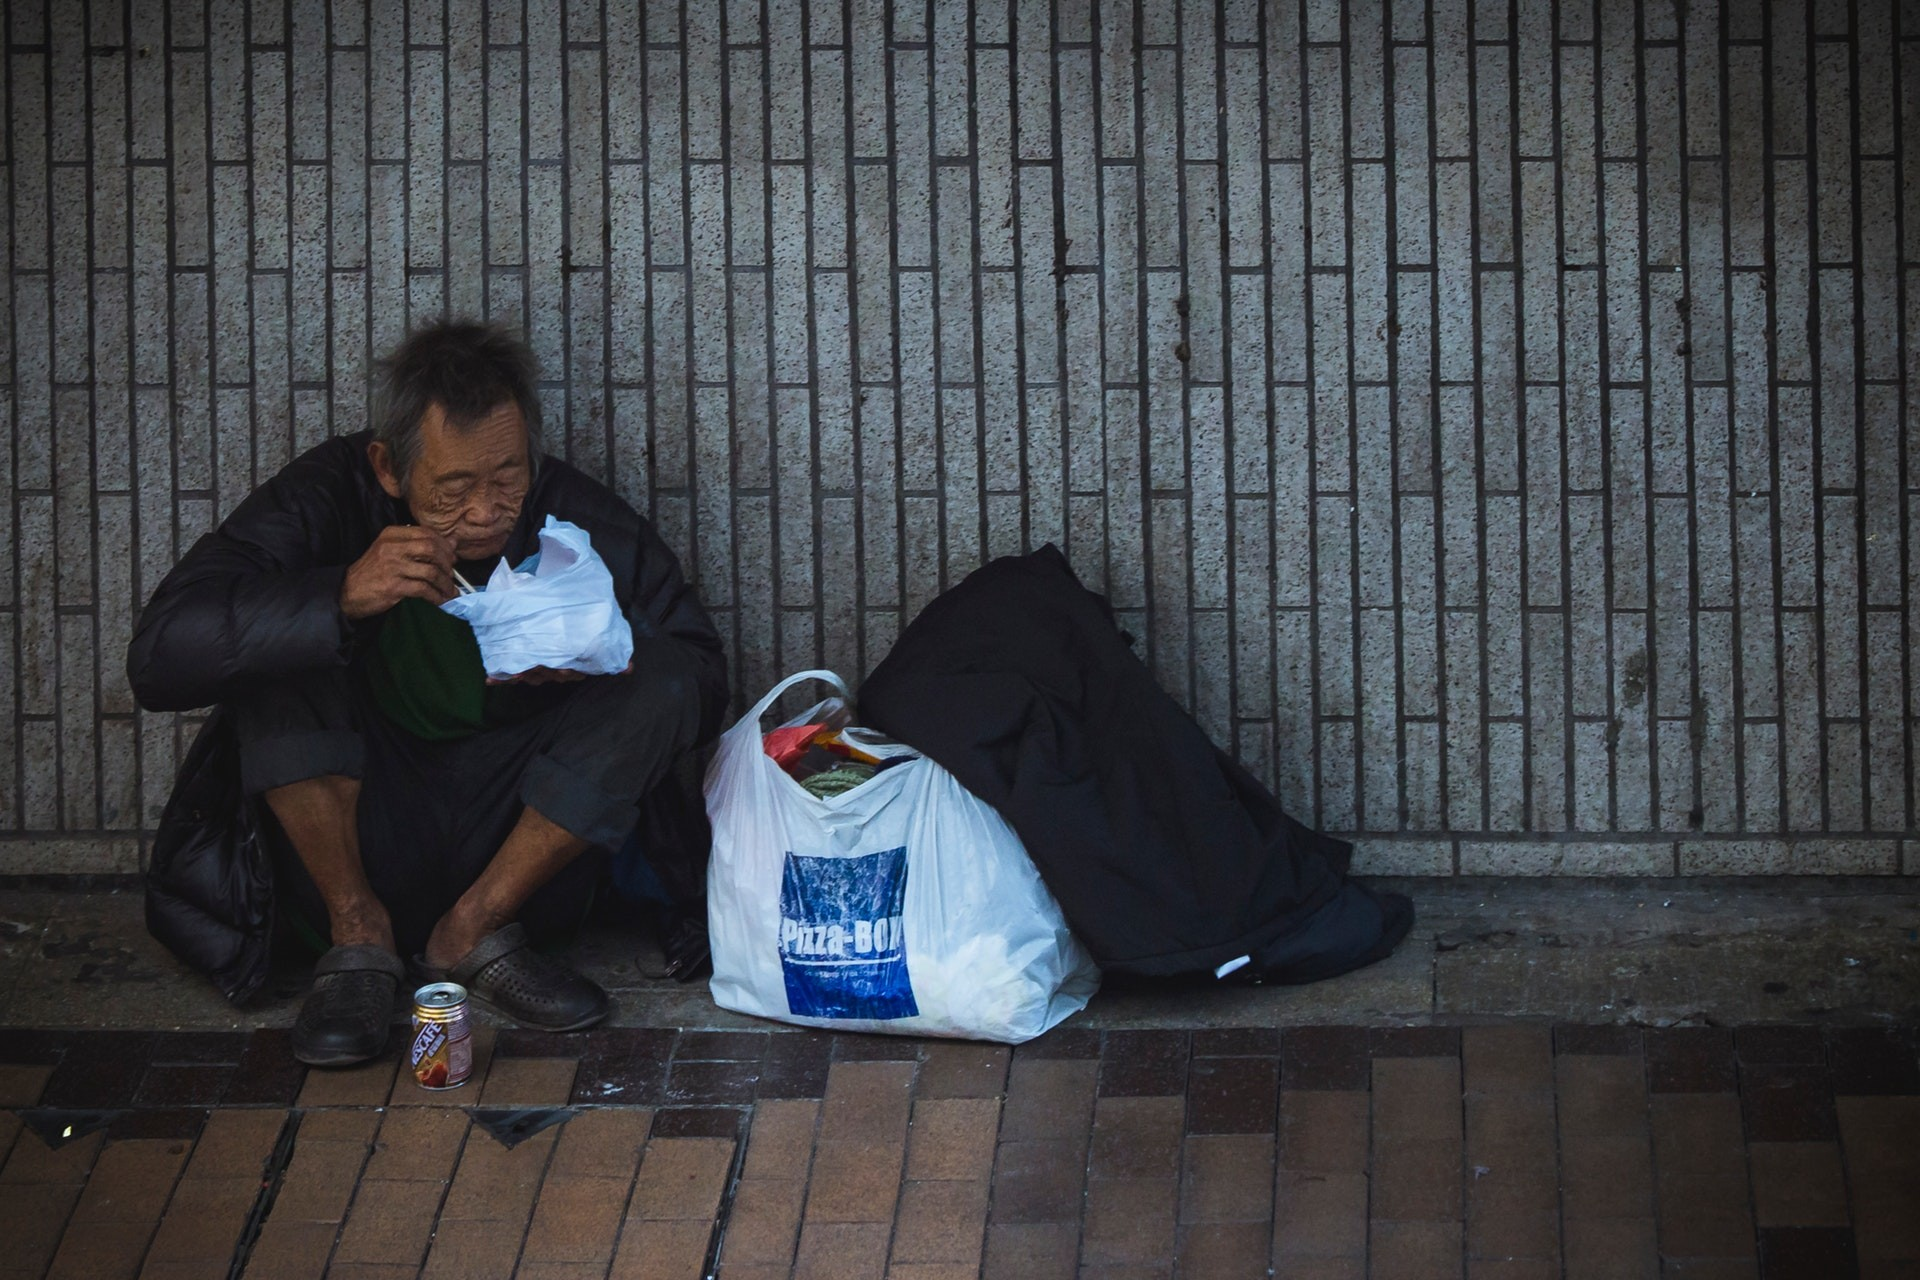 homeless person eating